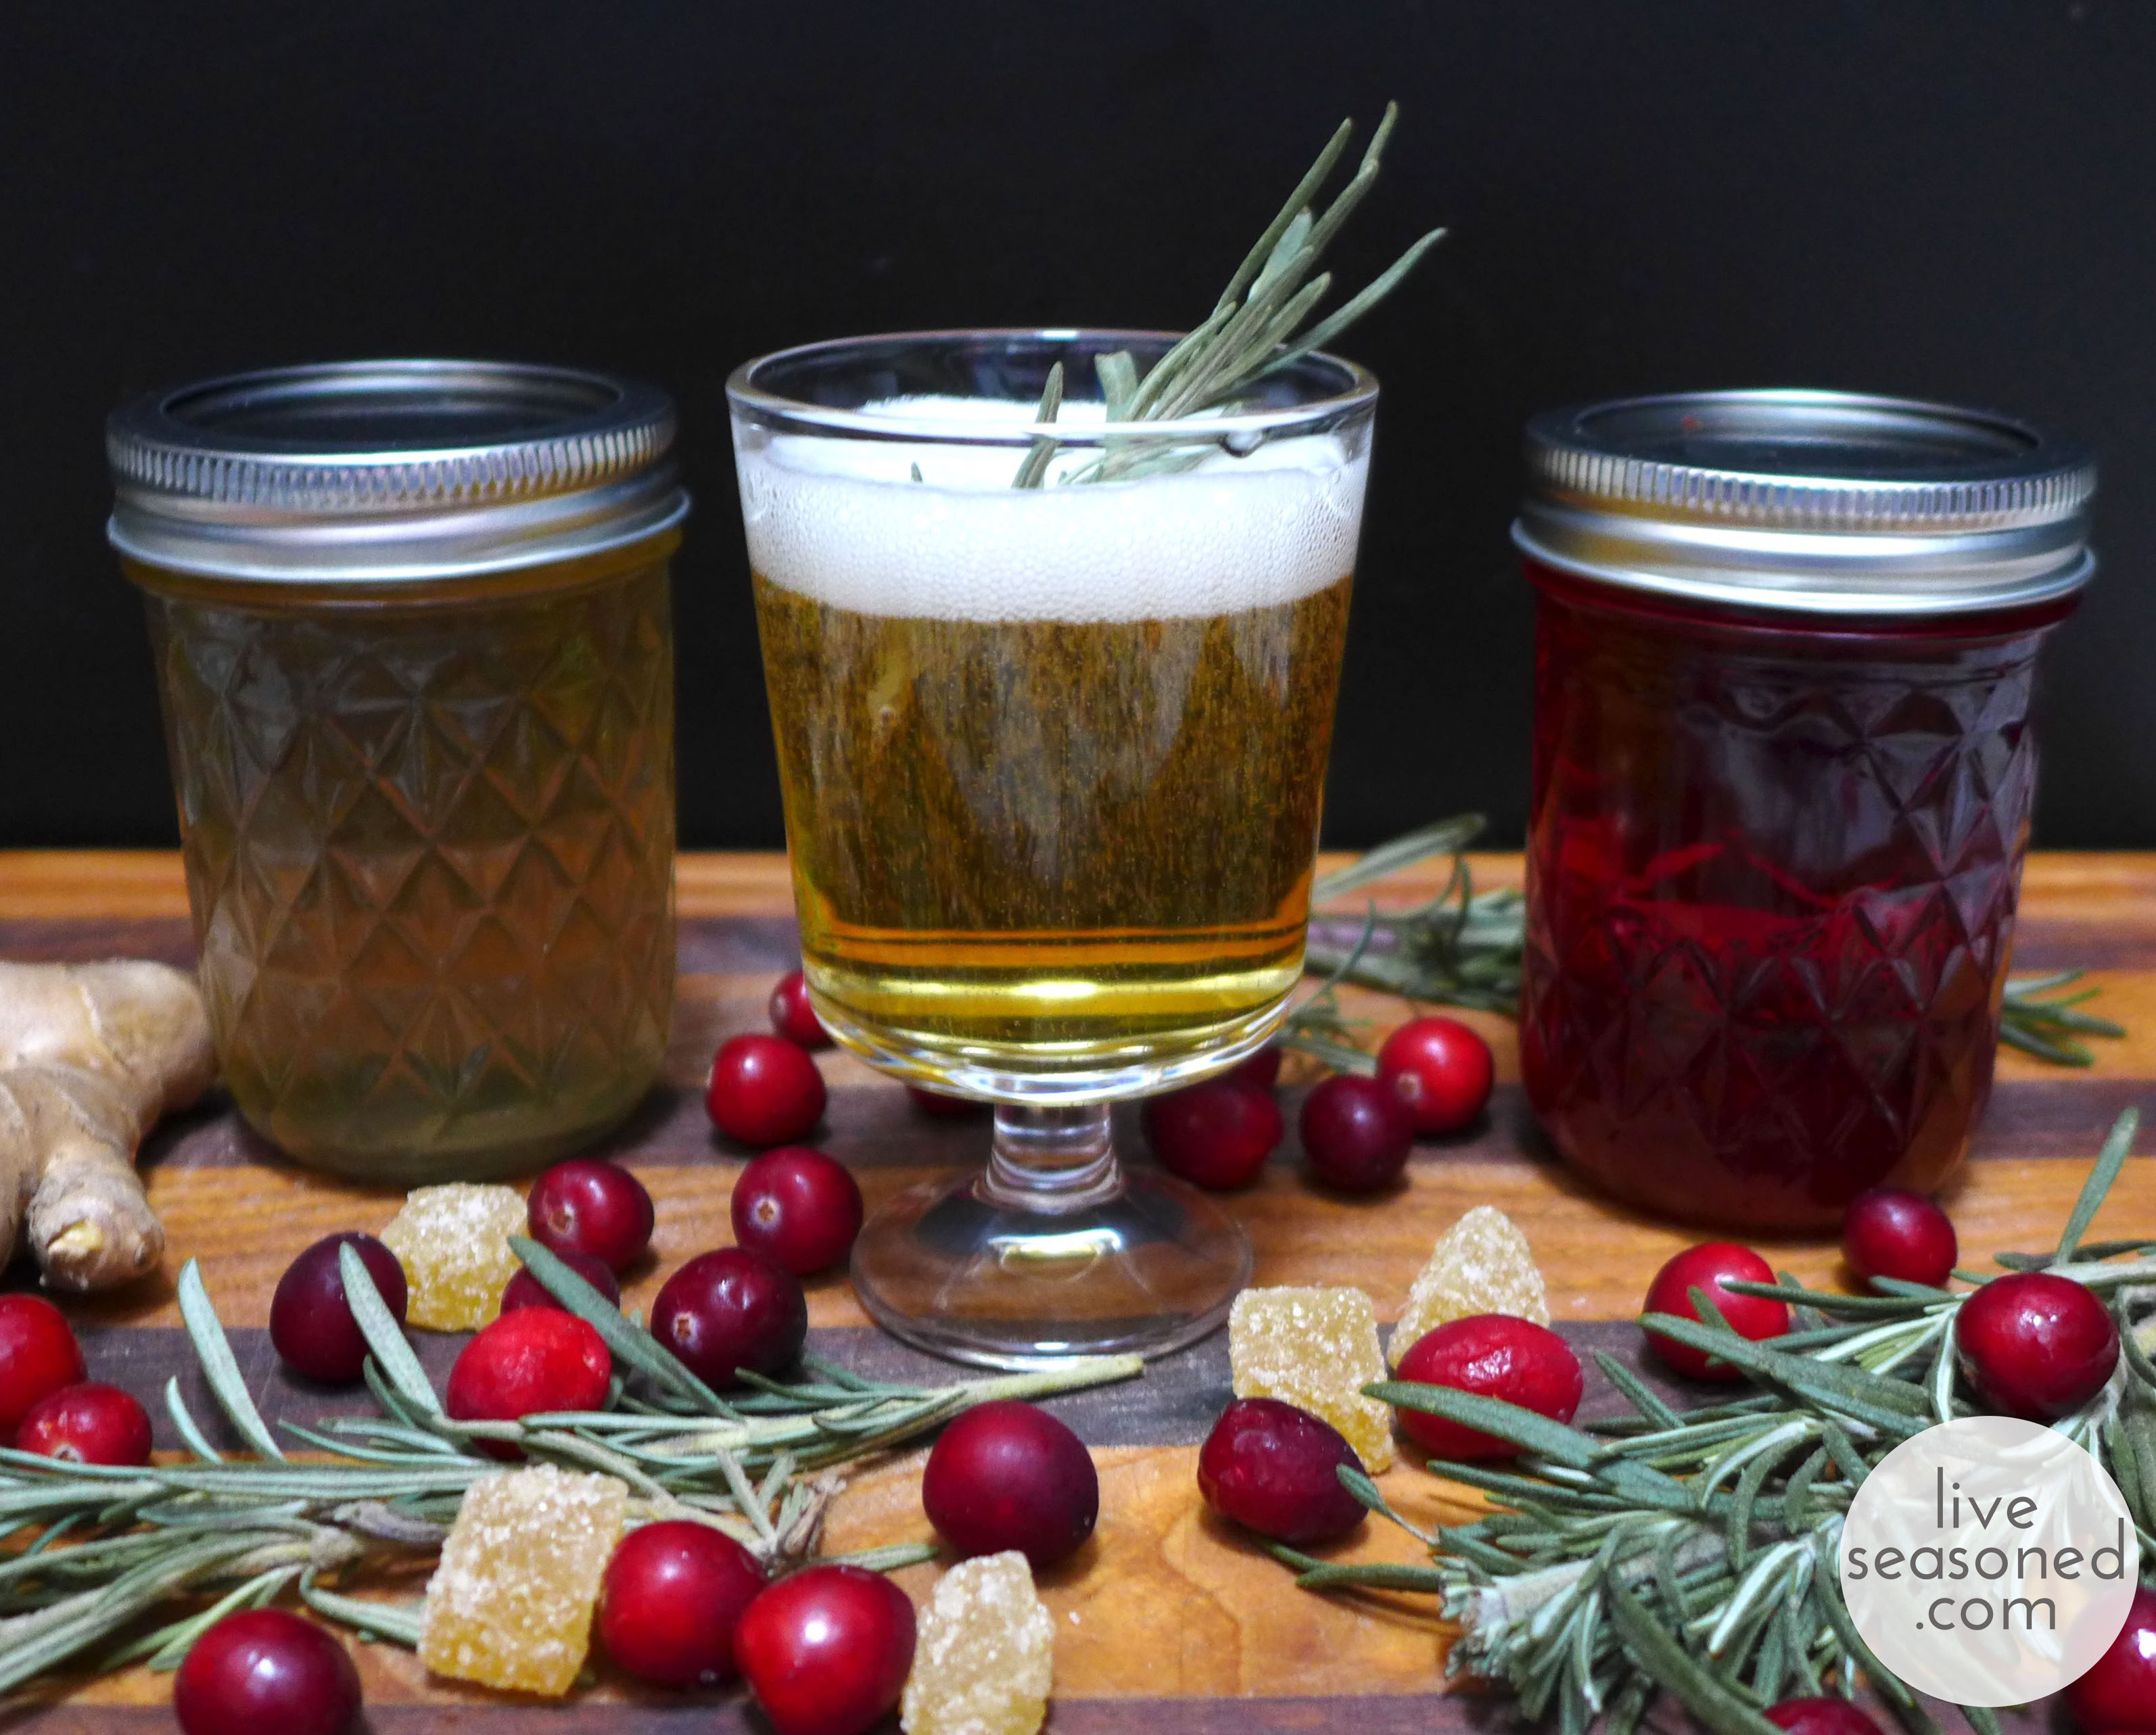 liveseasoned_fall2014_thanksgivingmocktails9_wm